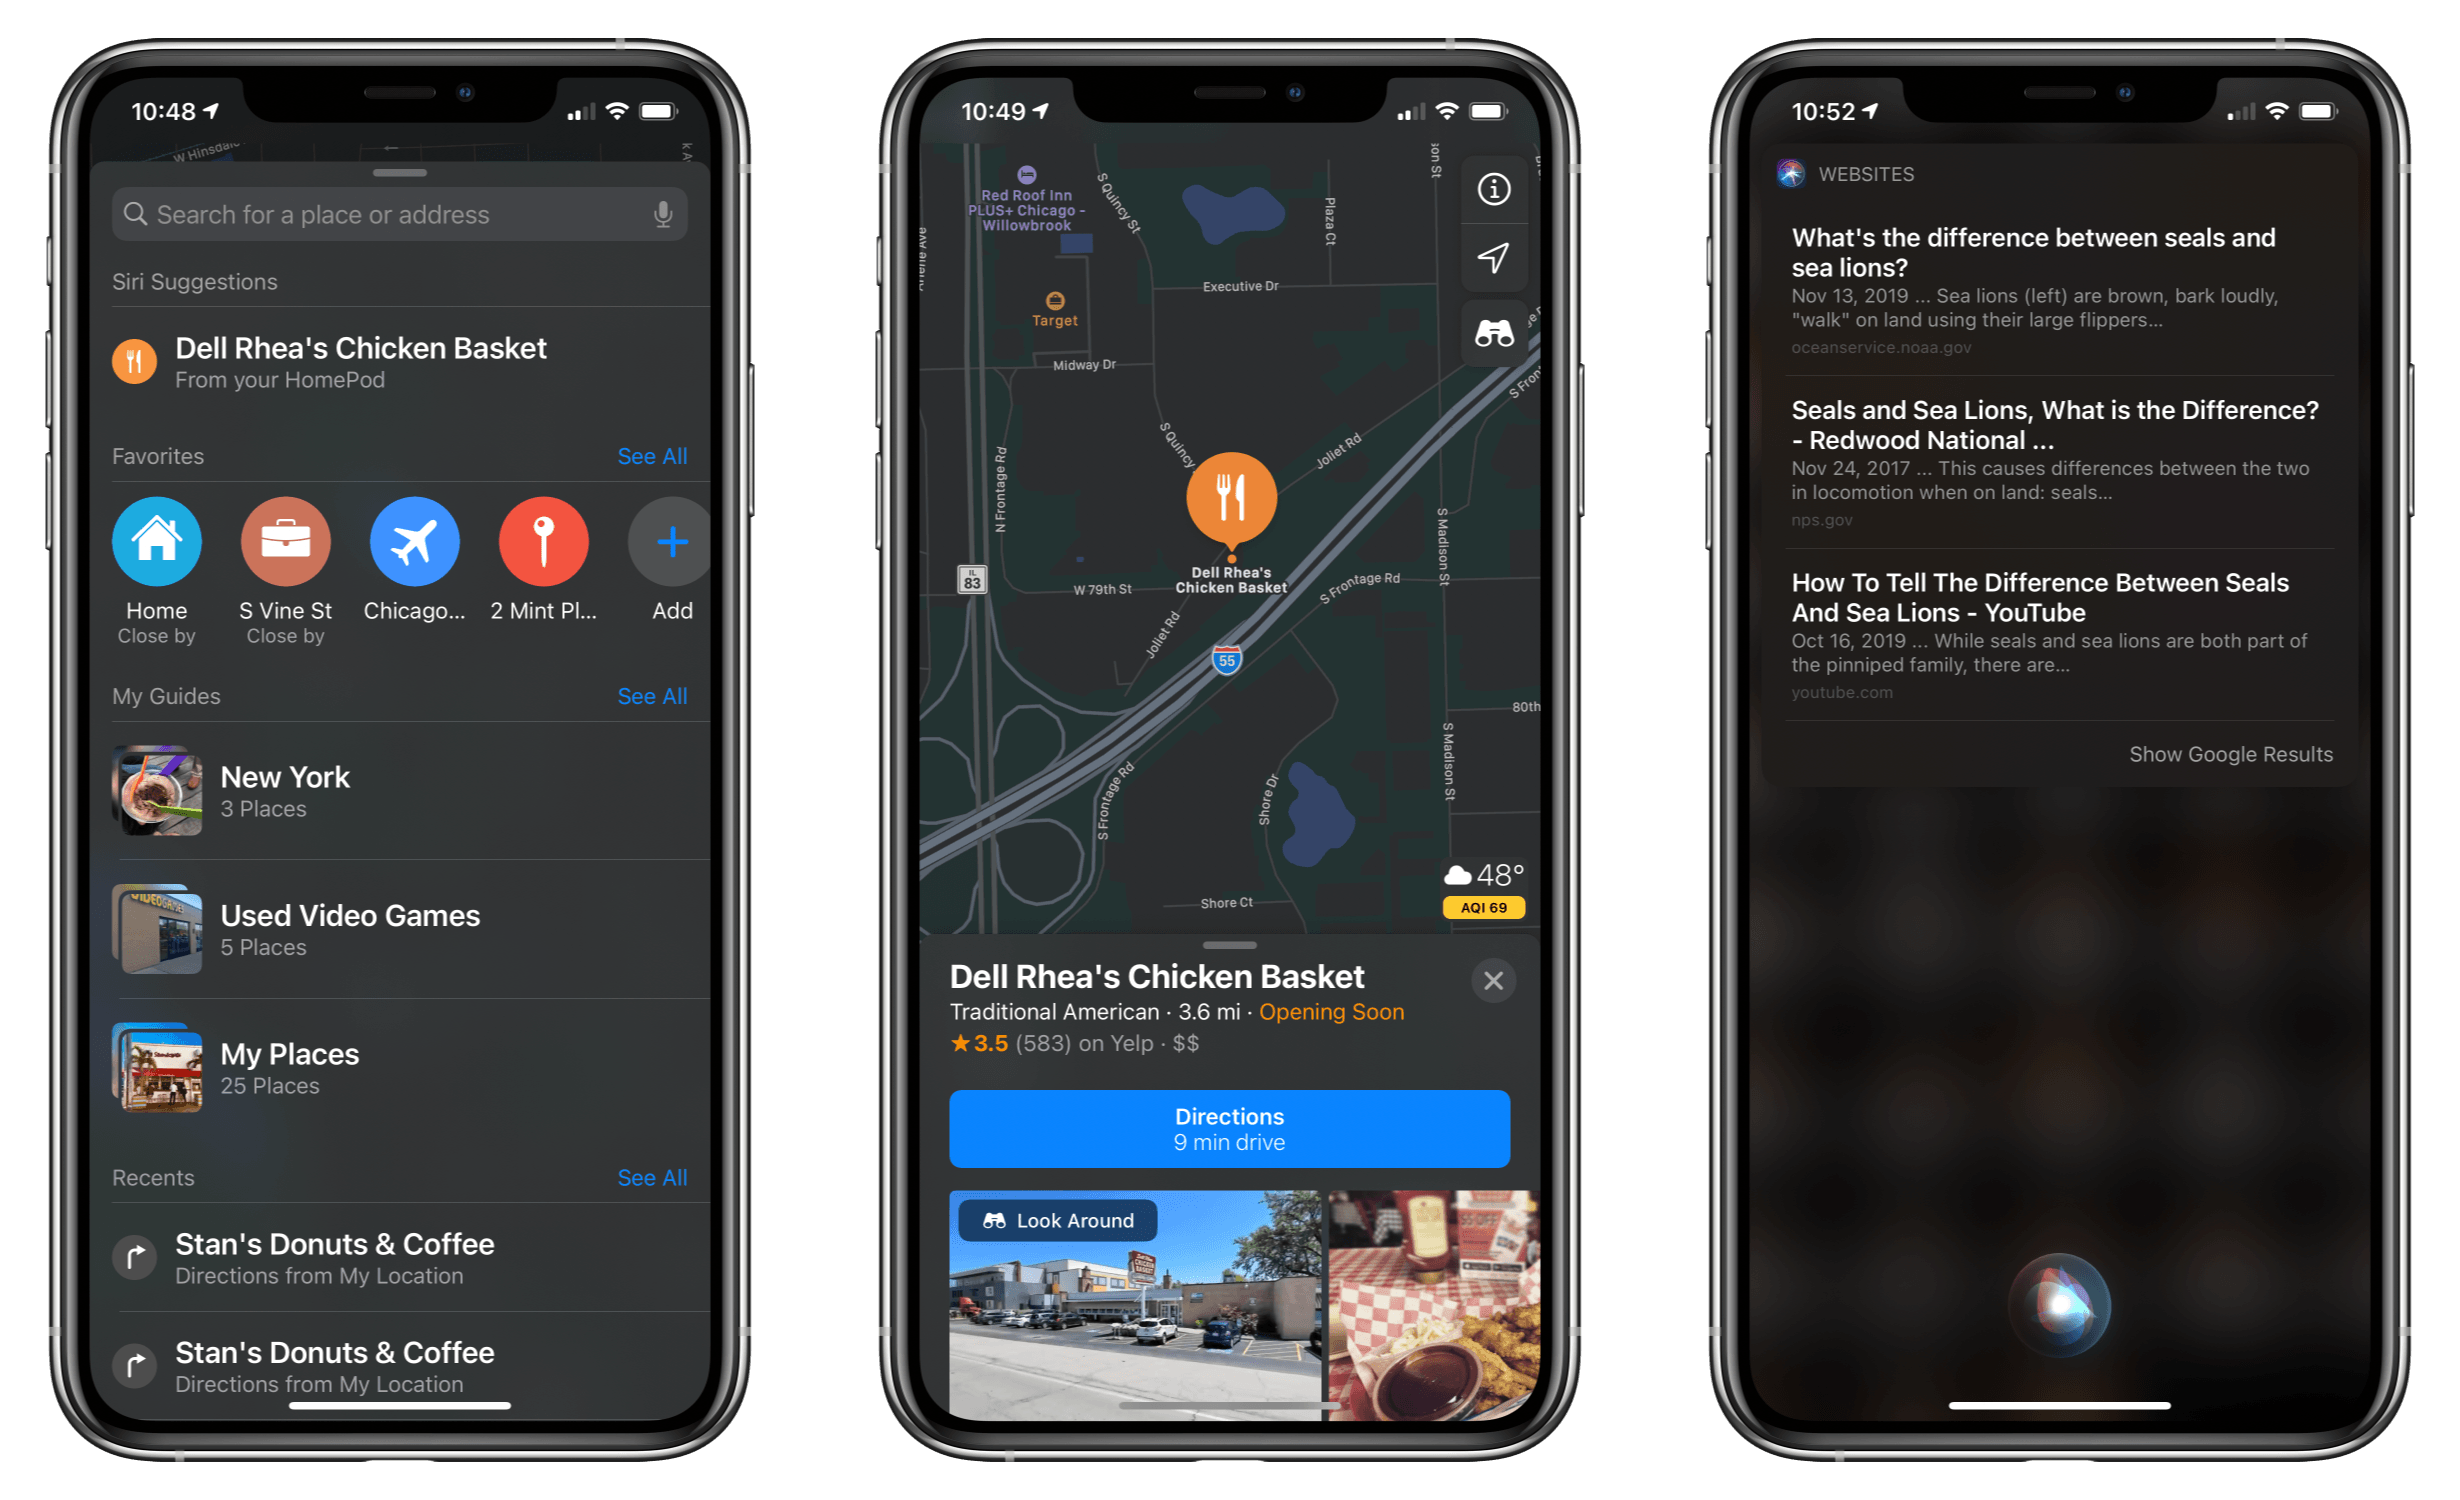 Location and web-based queries fielded by your HomePod are sent to your iPhone as Siri Suggestions.